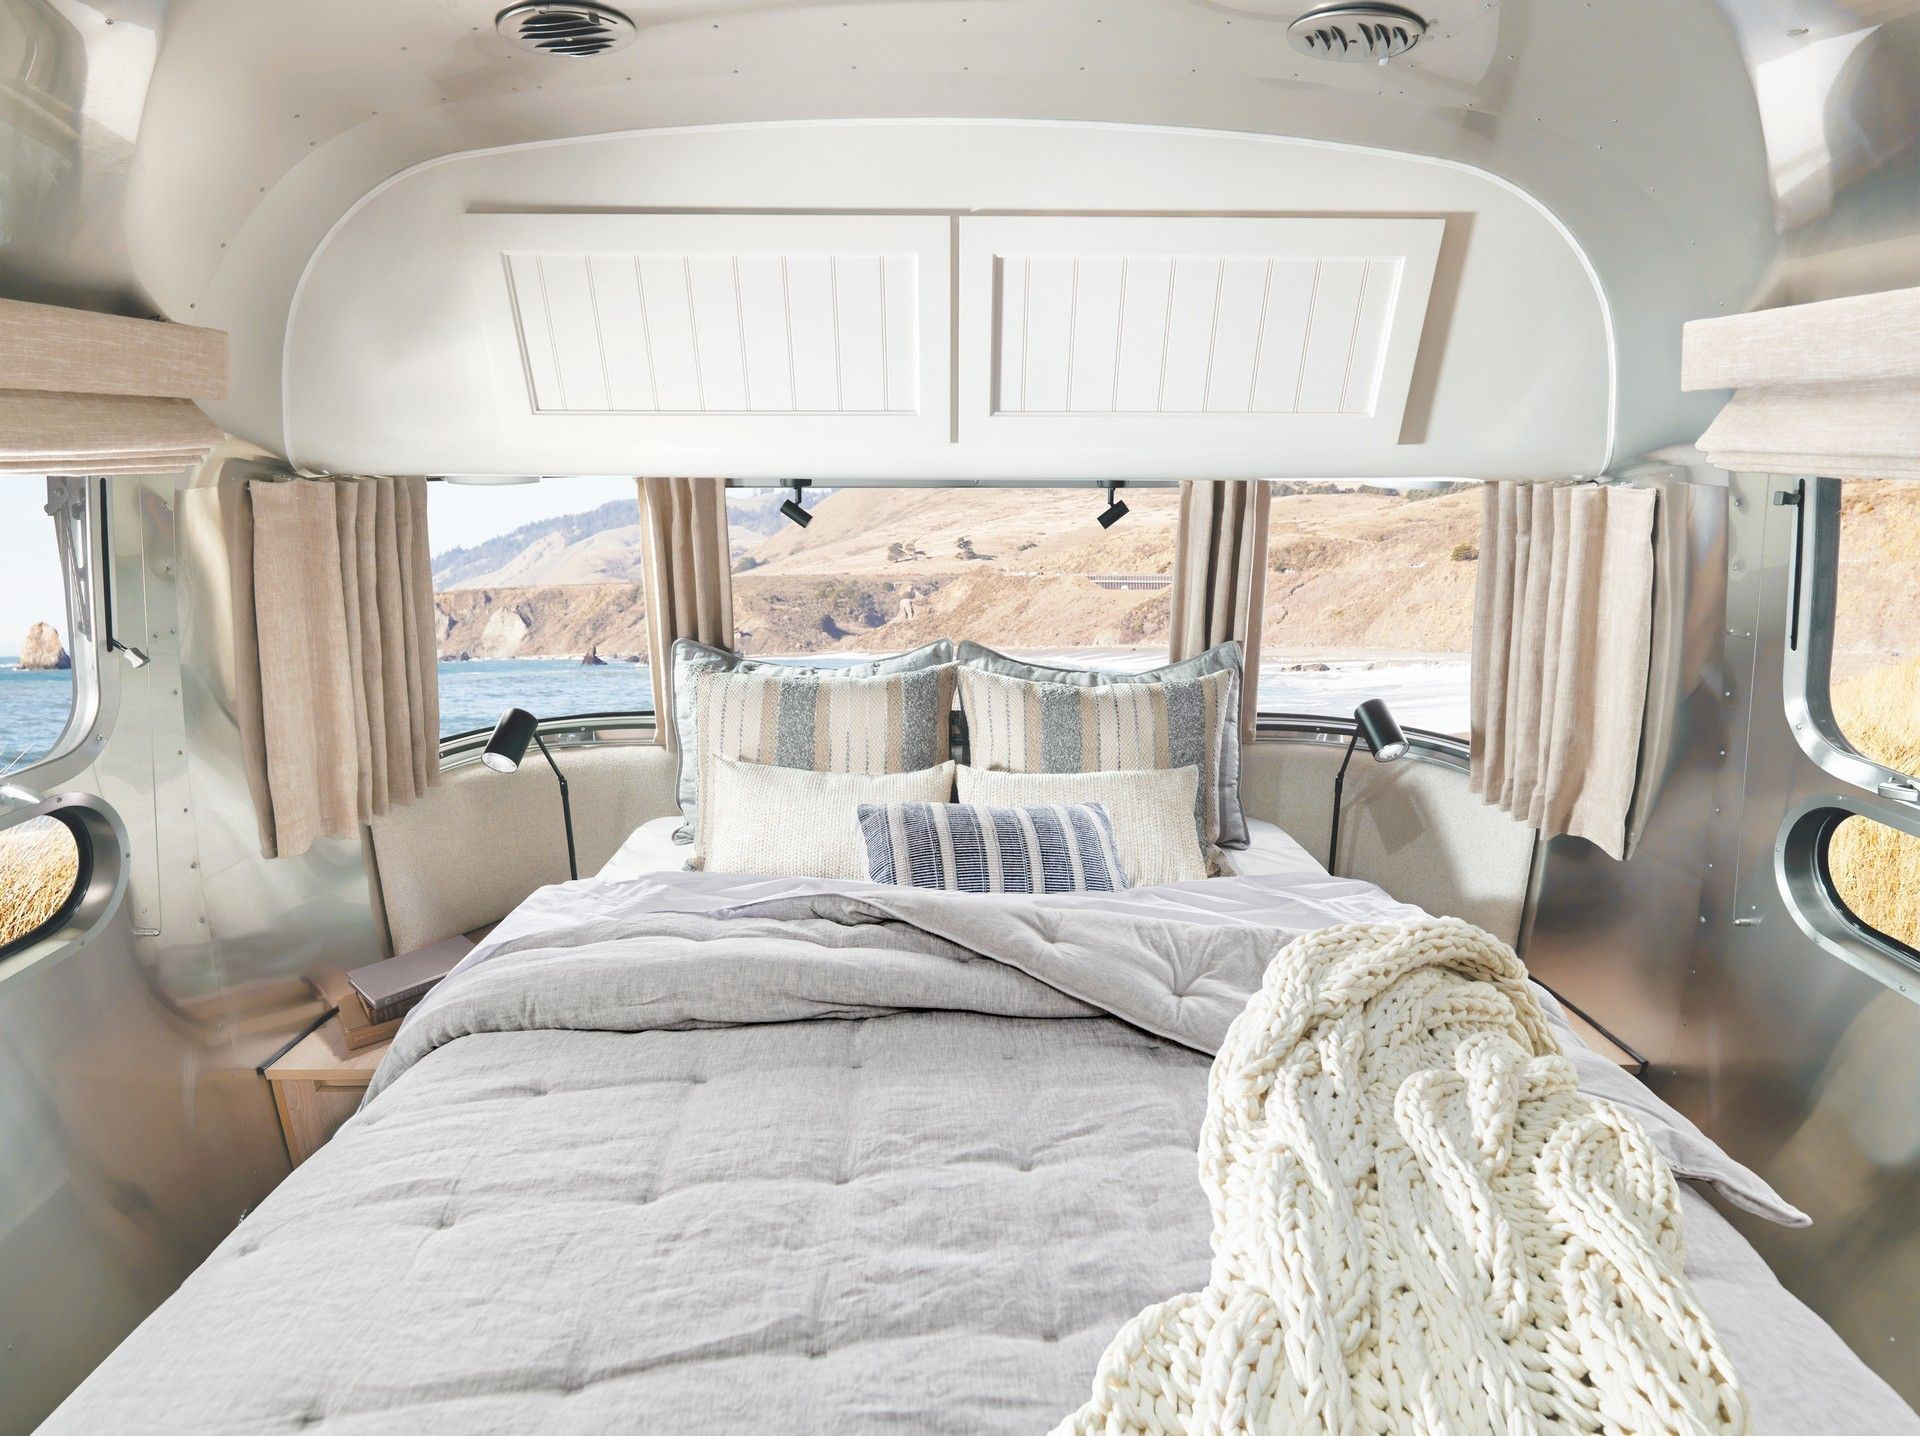 Airstream_Pottery_Barn_Special_Edition-0005